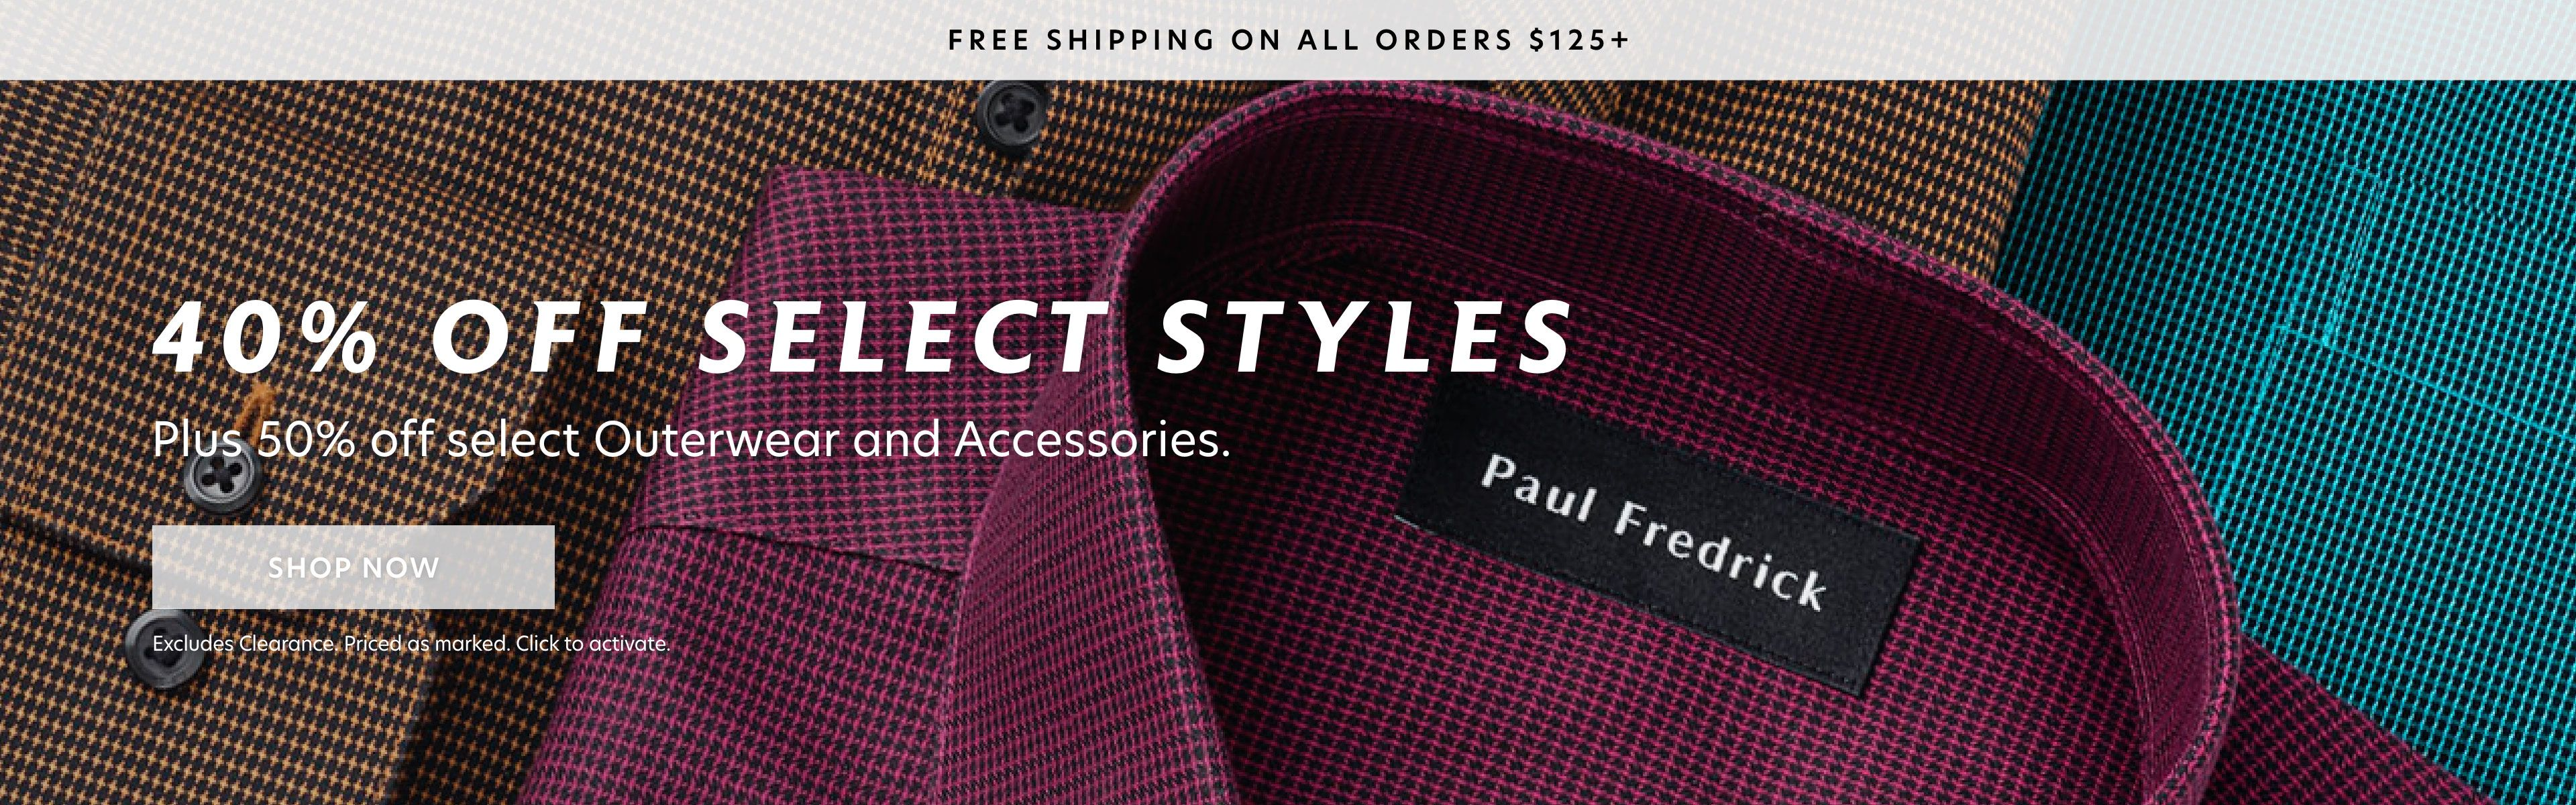 40% off select styles + 50% off select outerwear and accessories